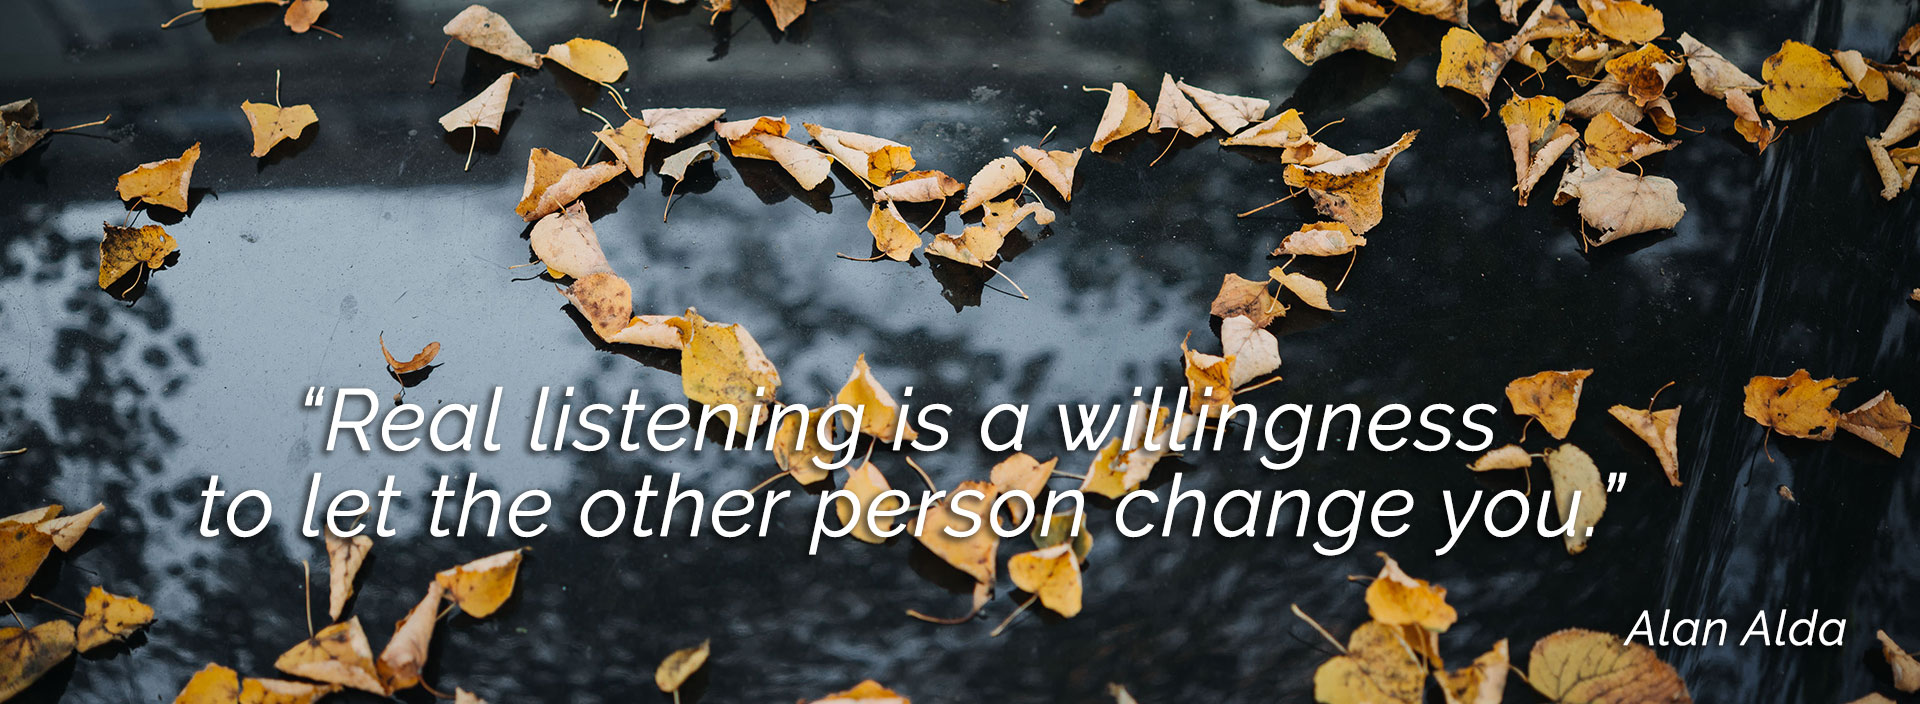 Real listening is a willingness to let the other person change you.